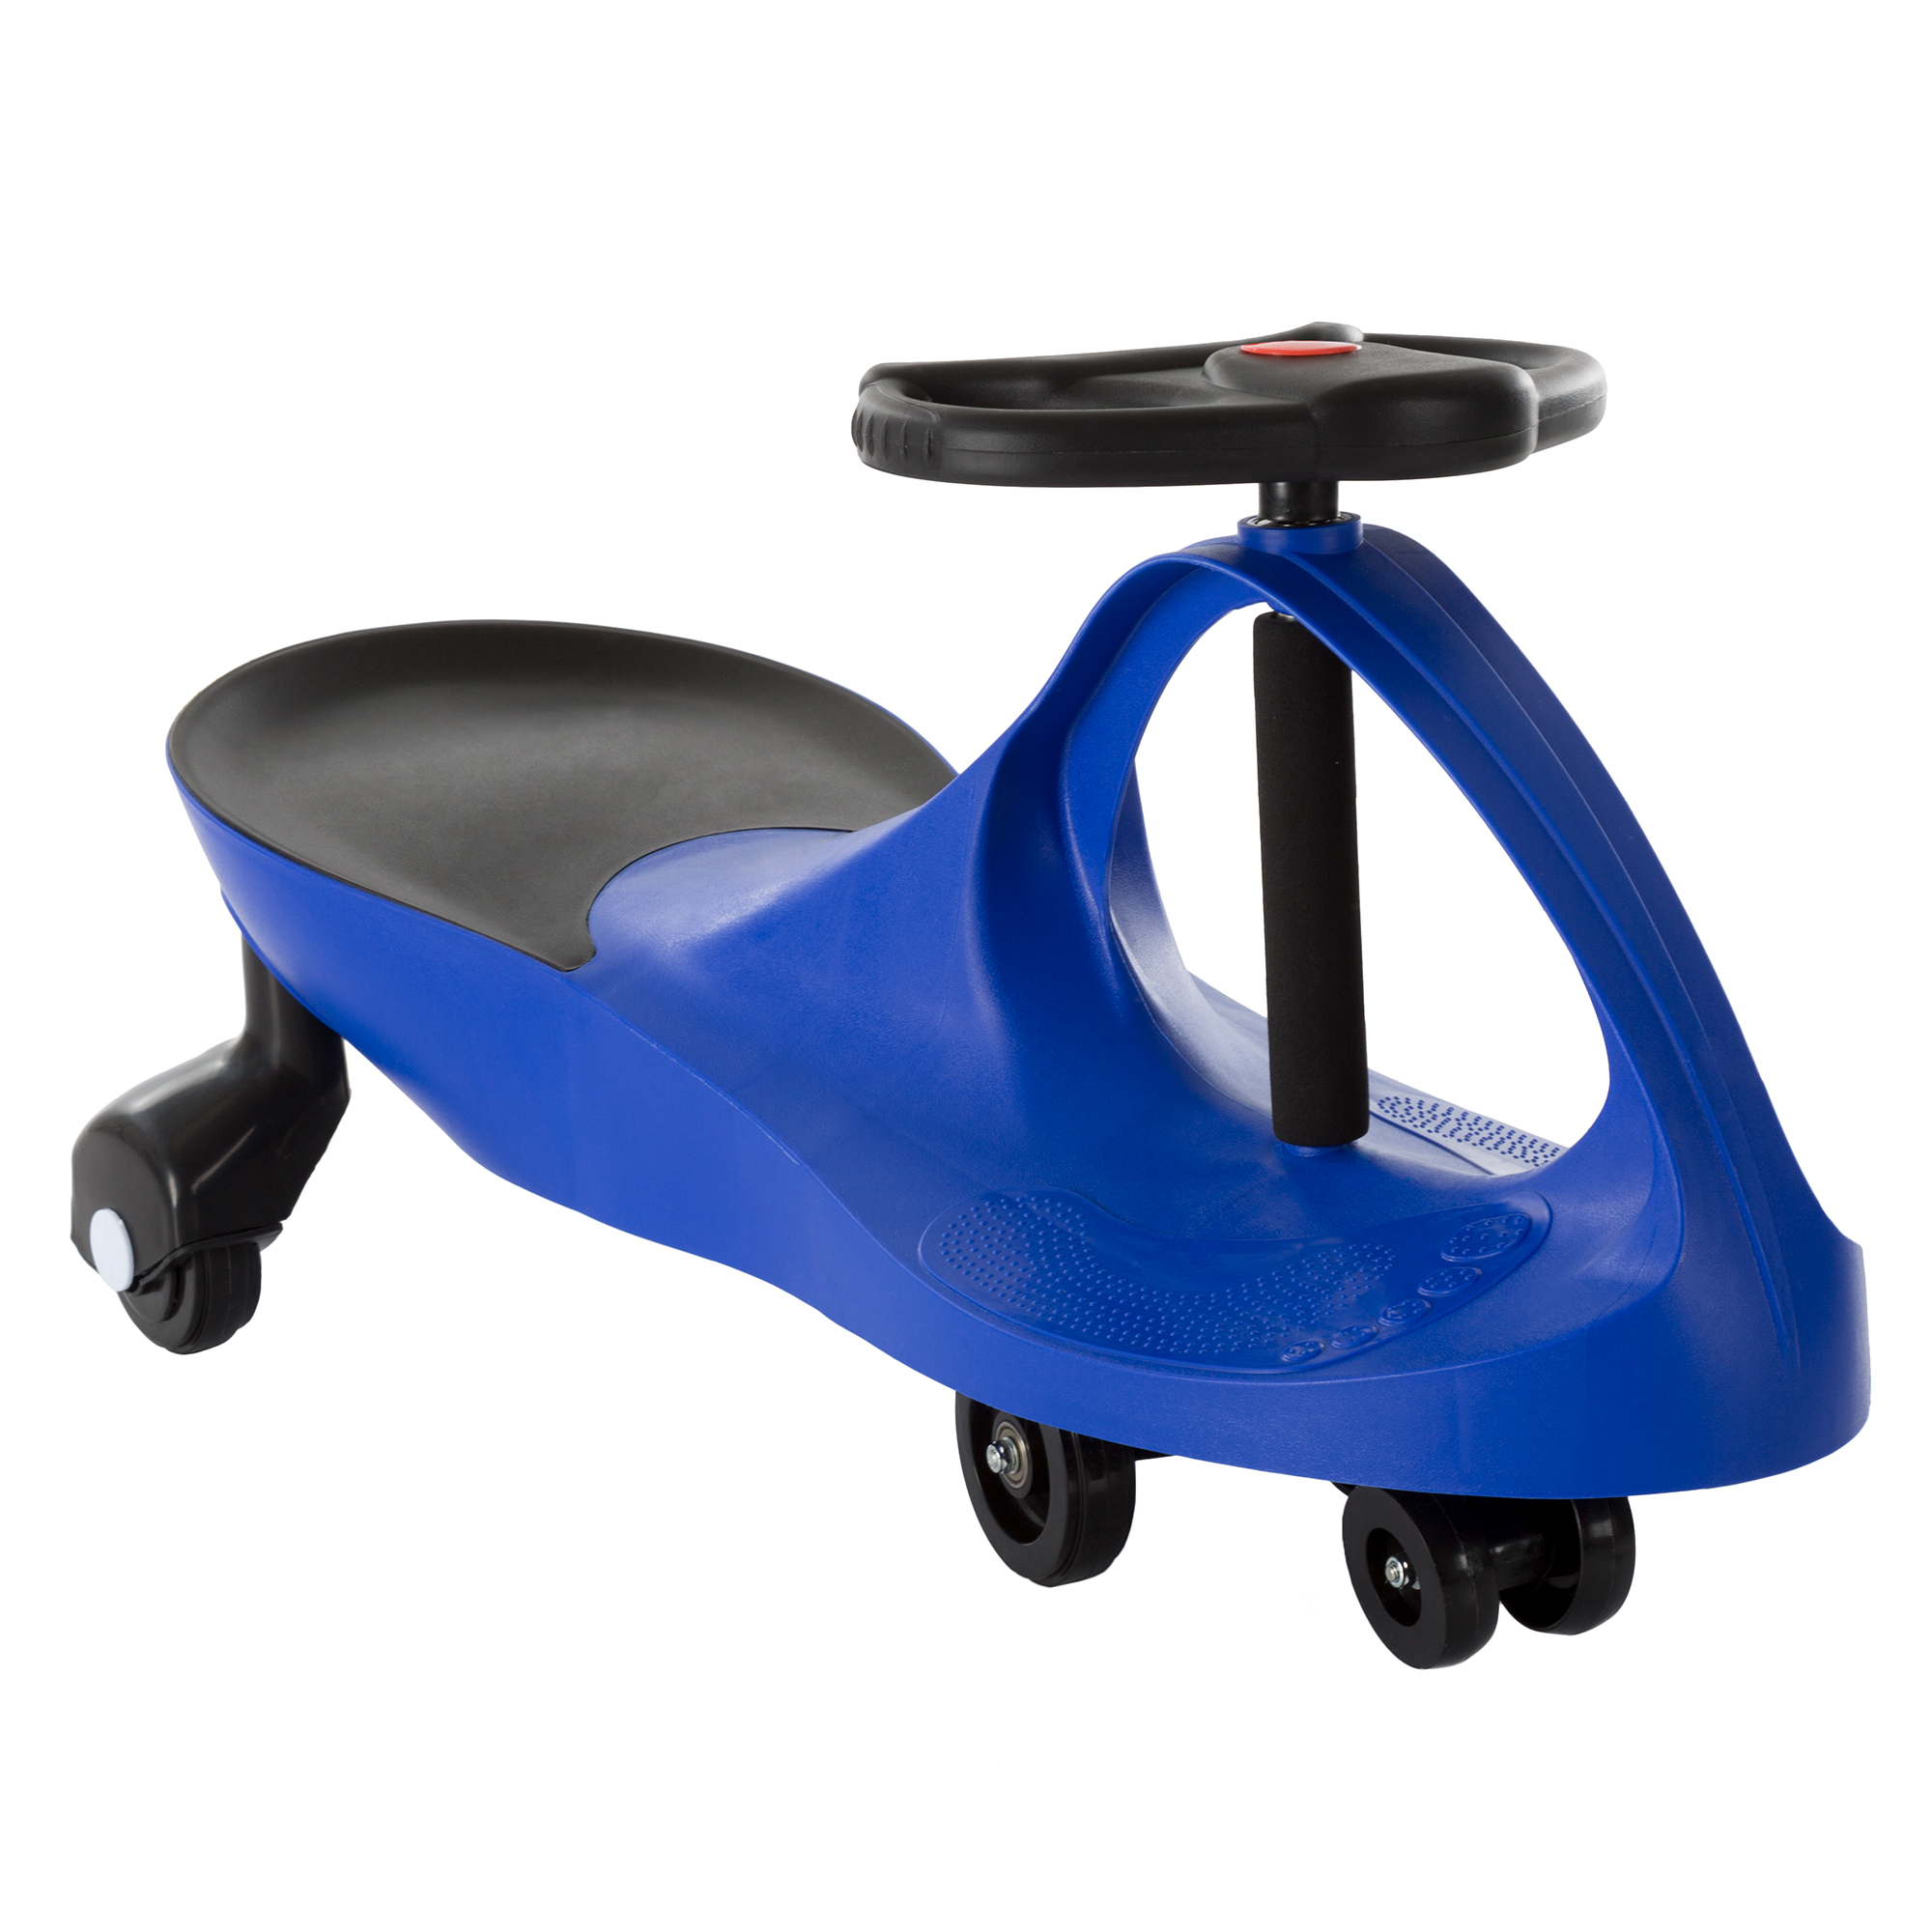 Ride On Car, No Batteries, Gears or Pedals, Uses Twist, Turn, Wiggle Movement to Steer Zigzag Car by Lil' Rider